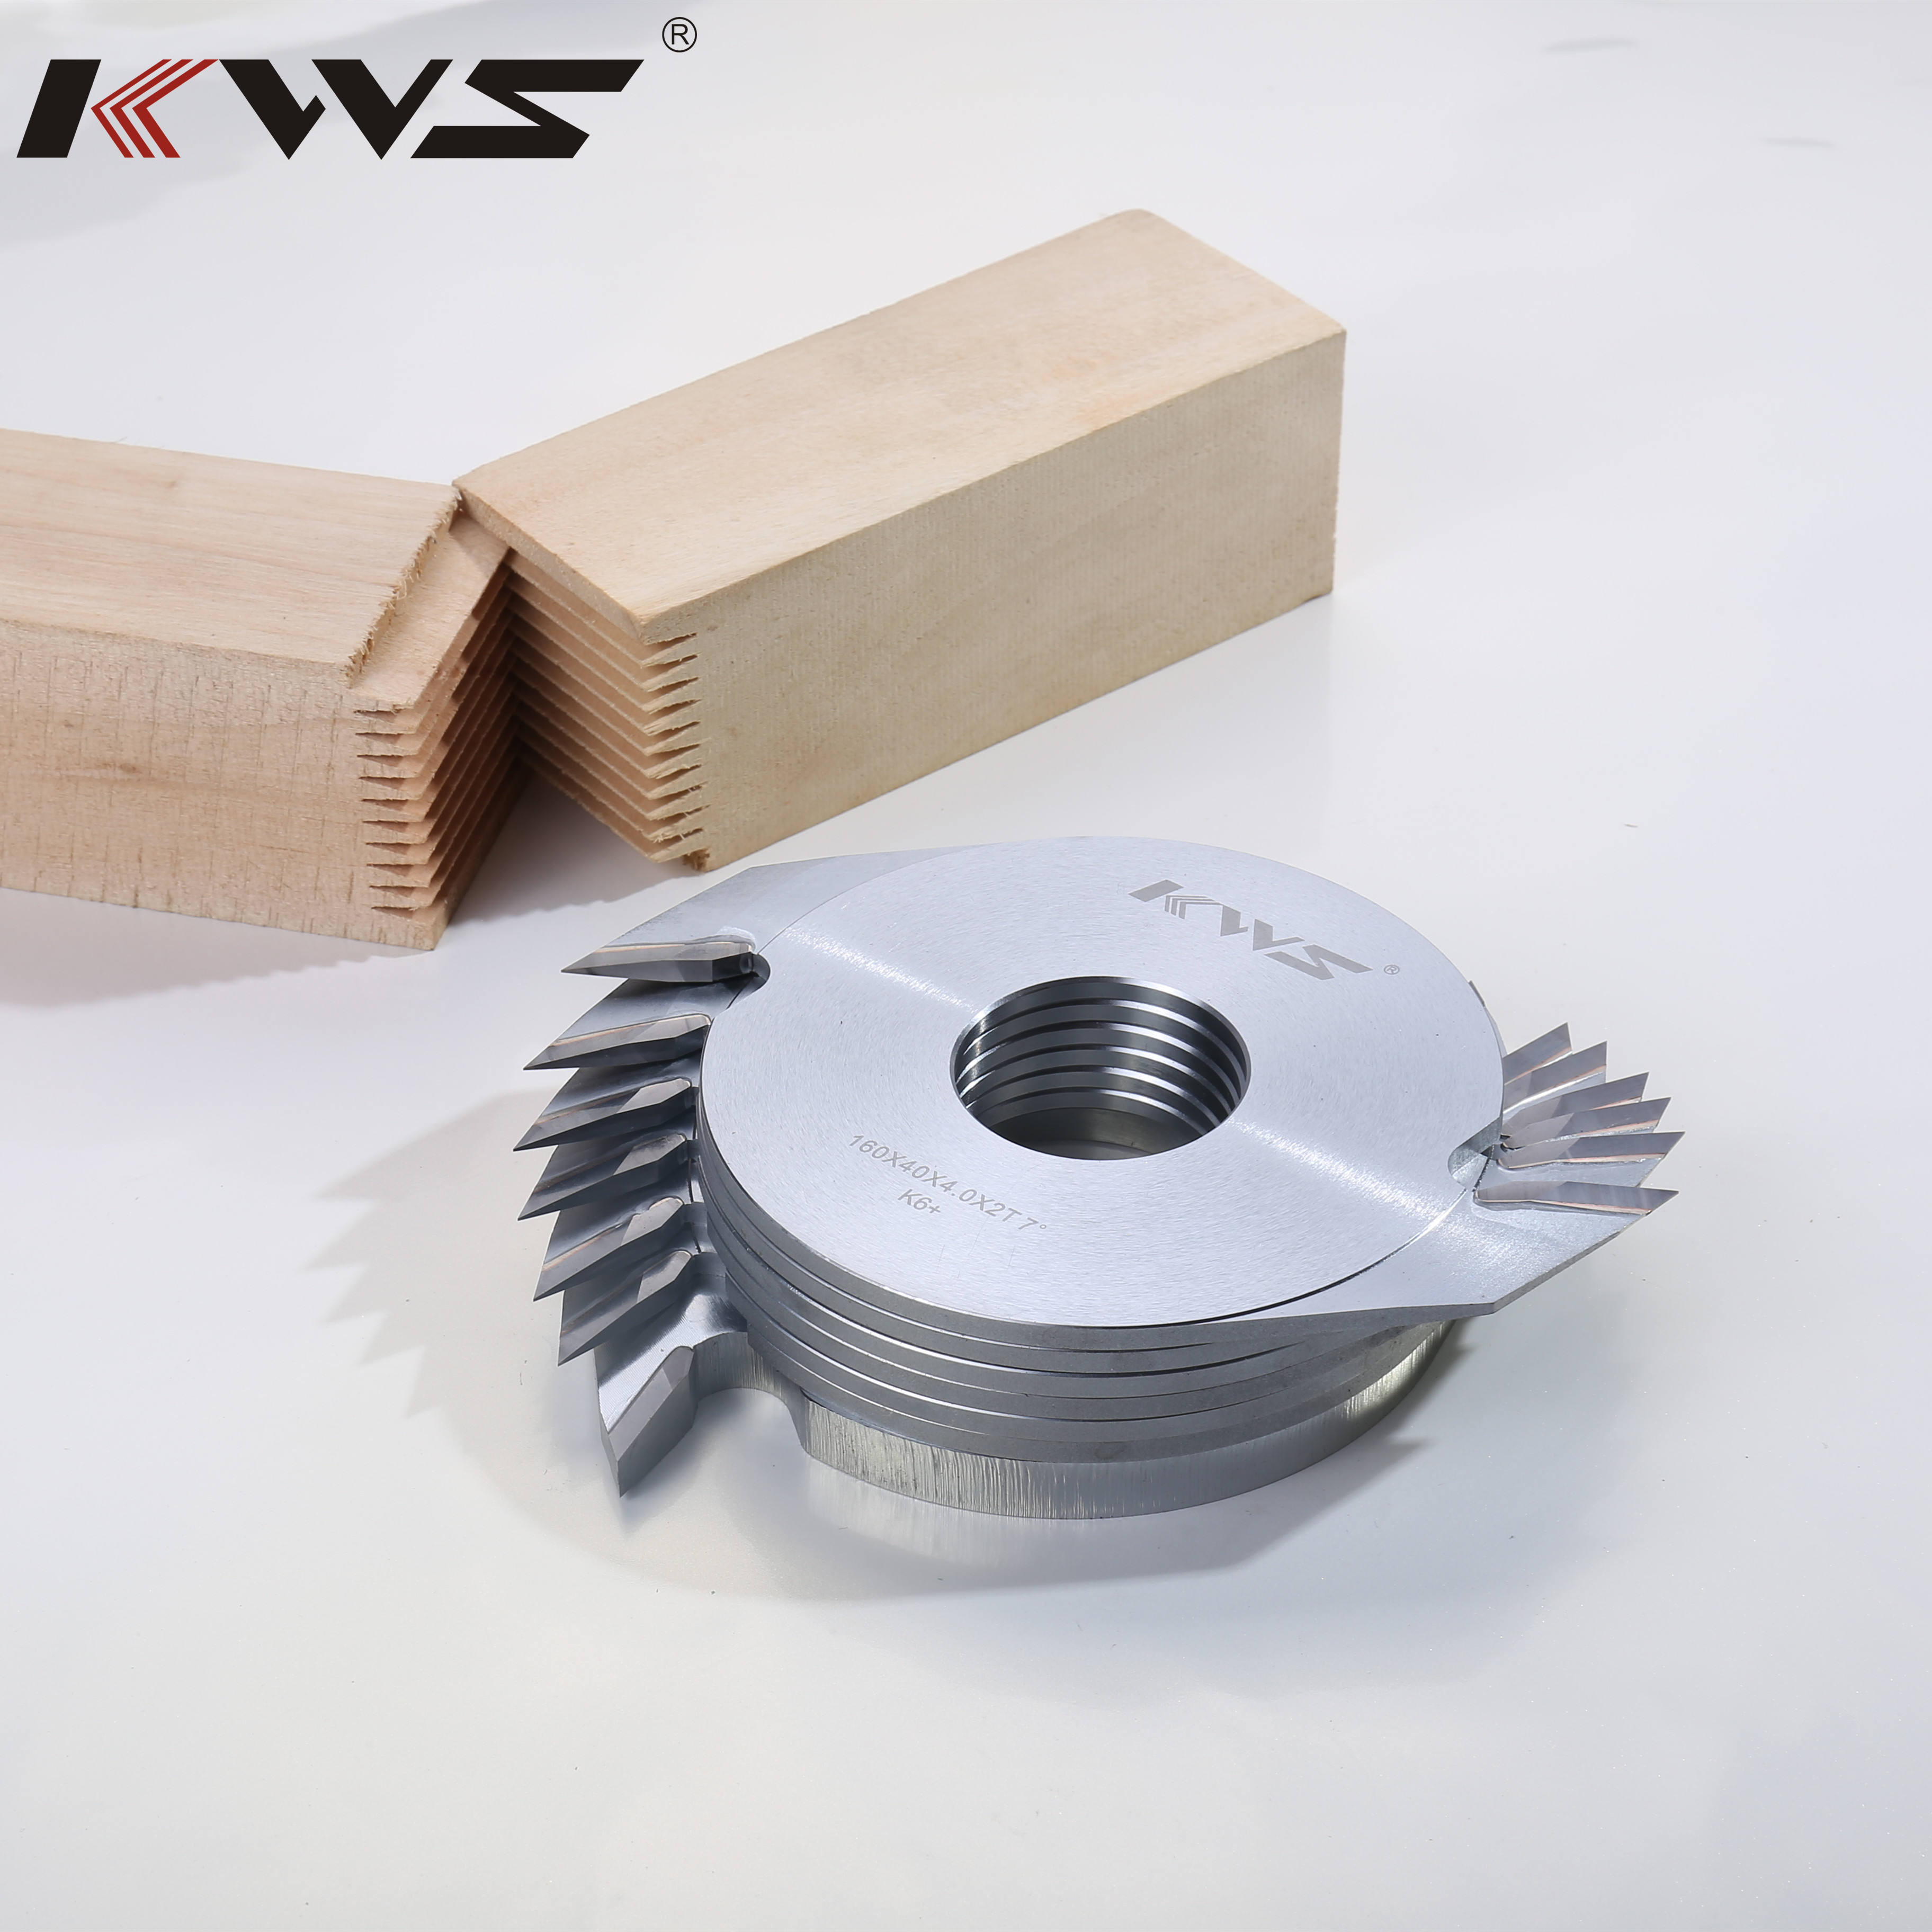 KWS 160MM 9MM Deep Finger joint cutter head for joint solid wood saw blade for wood